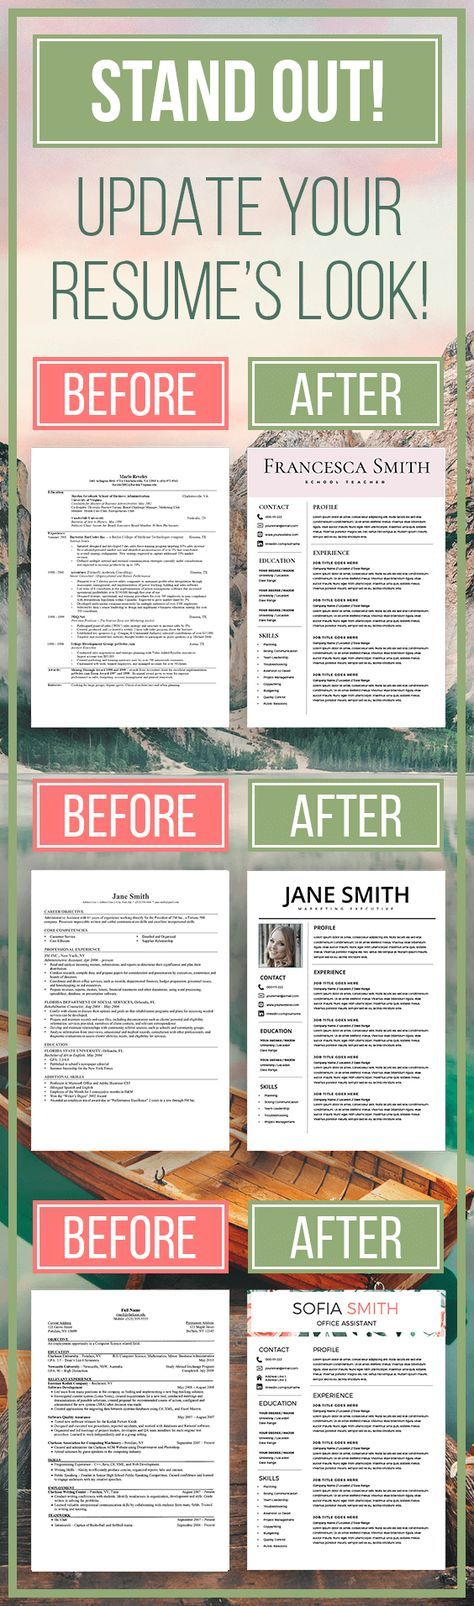 Supervisor Resume Objective Pdf Top Resume Templates Creative Cv Templates Resume Layout  Medical Billing Resumes Word with Resume For Top Resume Templates Creative Cv Templates Resume Layout Professional Cv  Template Modern Translator Resume Excel